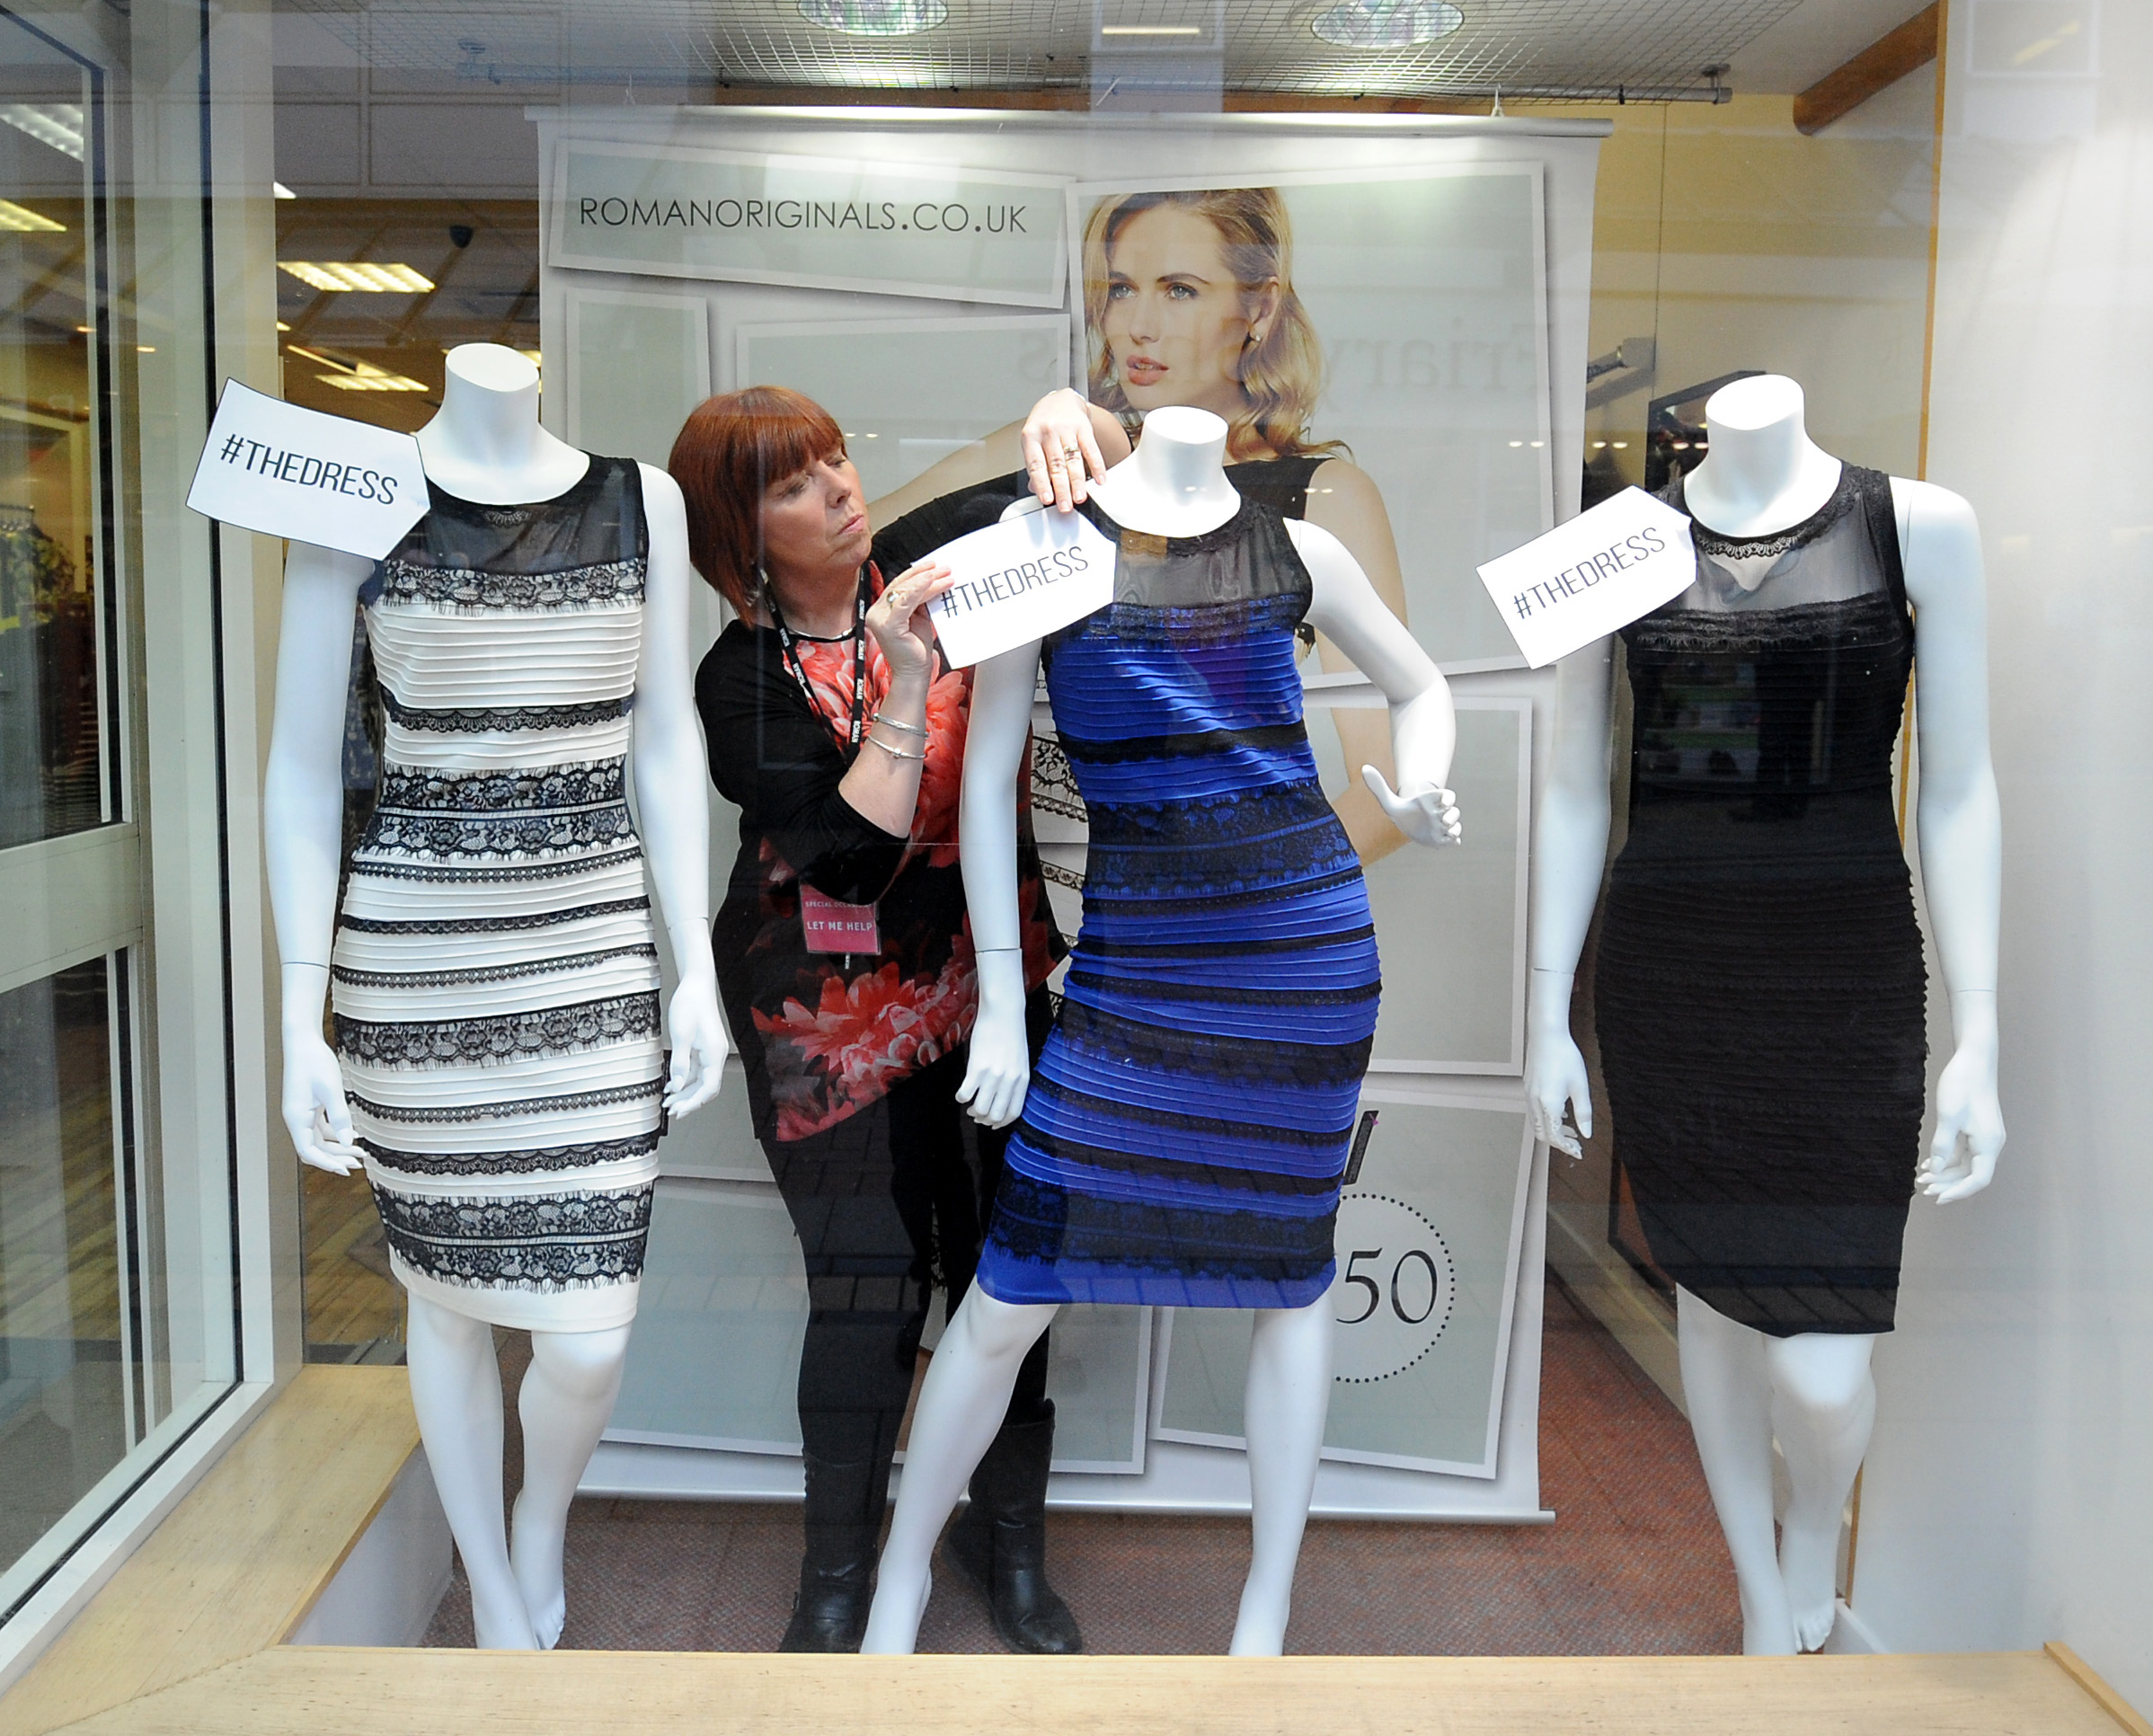 Shop manager Debbie Armstrong adjusts a two tone Roman Originals dress in a window display at a Roman Originals shop in Lichfield, England on Feb. 27, 2015.